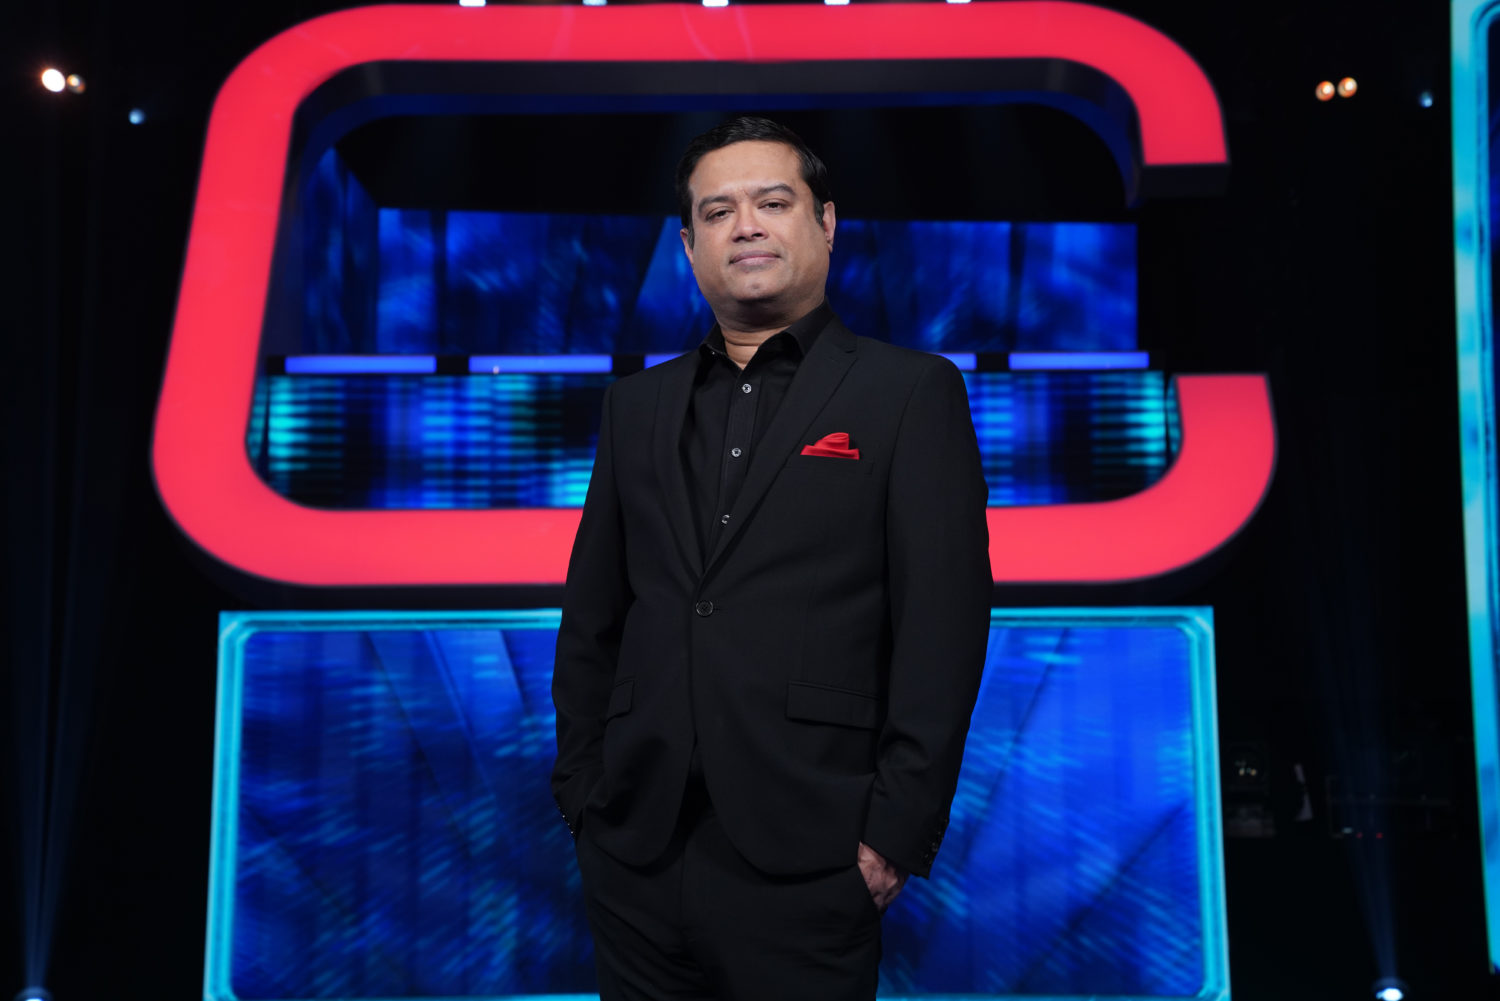 The Chase's Paul Sinha shows off his hula hoop skills - and delivers a strong message for Parkinson's